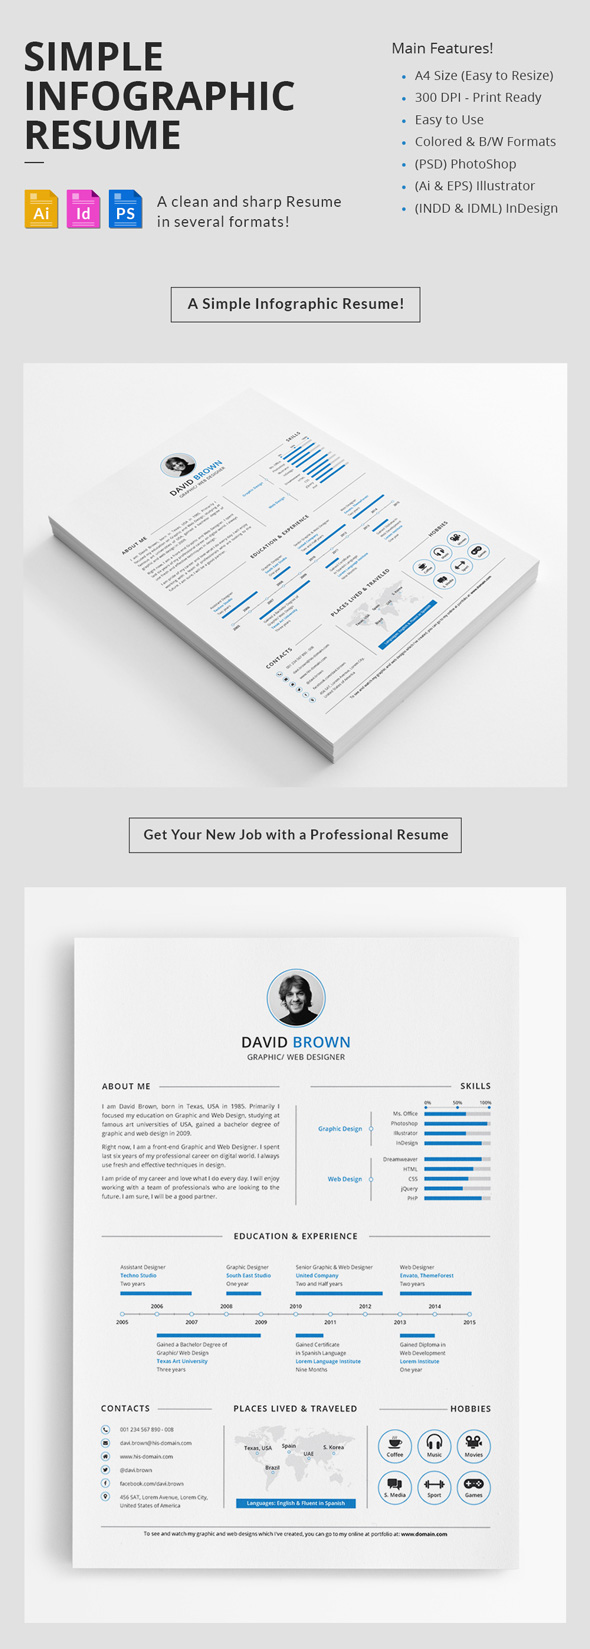 18 creative infographic resume templates for 2018 minimal resume template design flashek Image collections